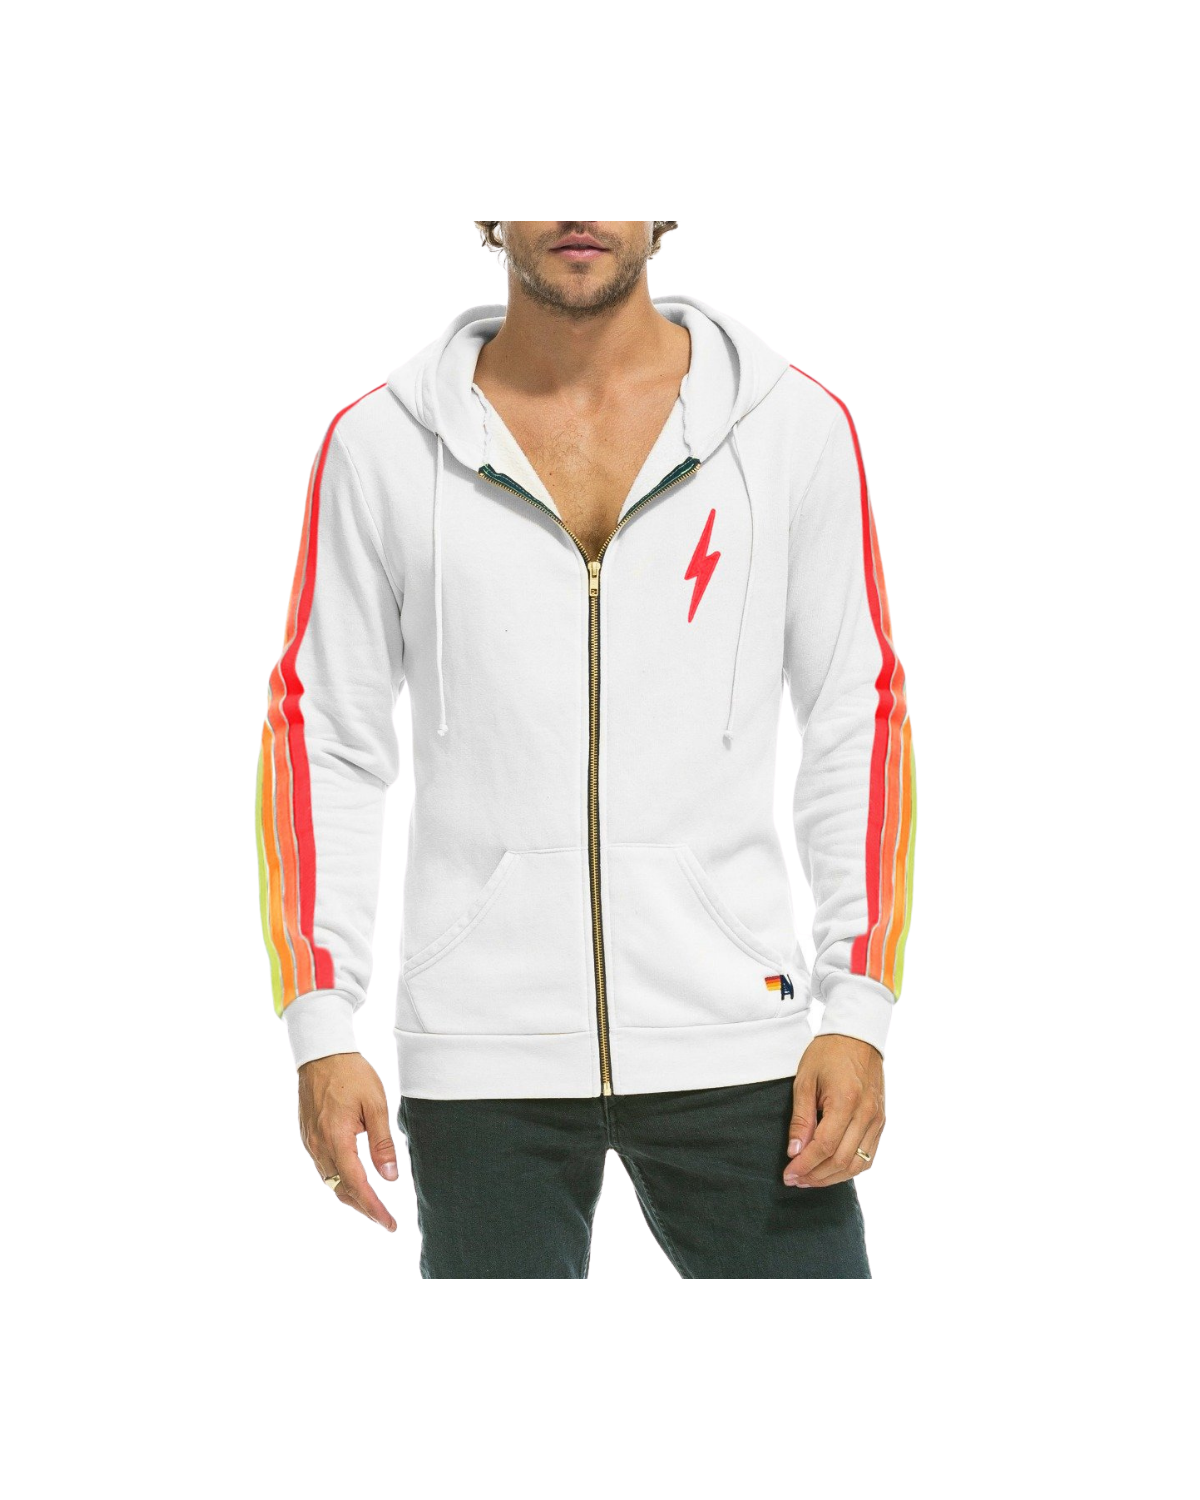 Bolt Neon Sweatshirt - White/Neon